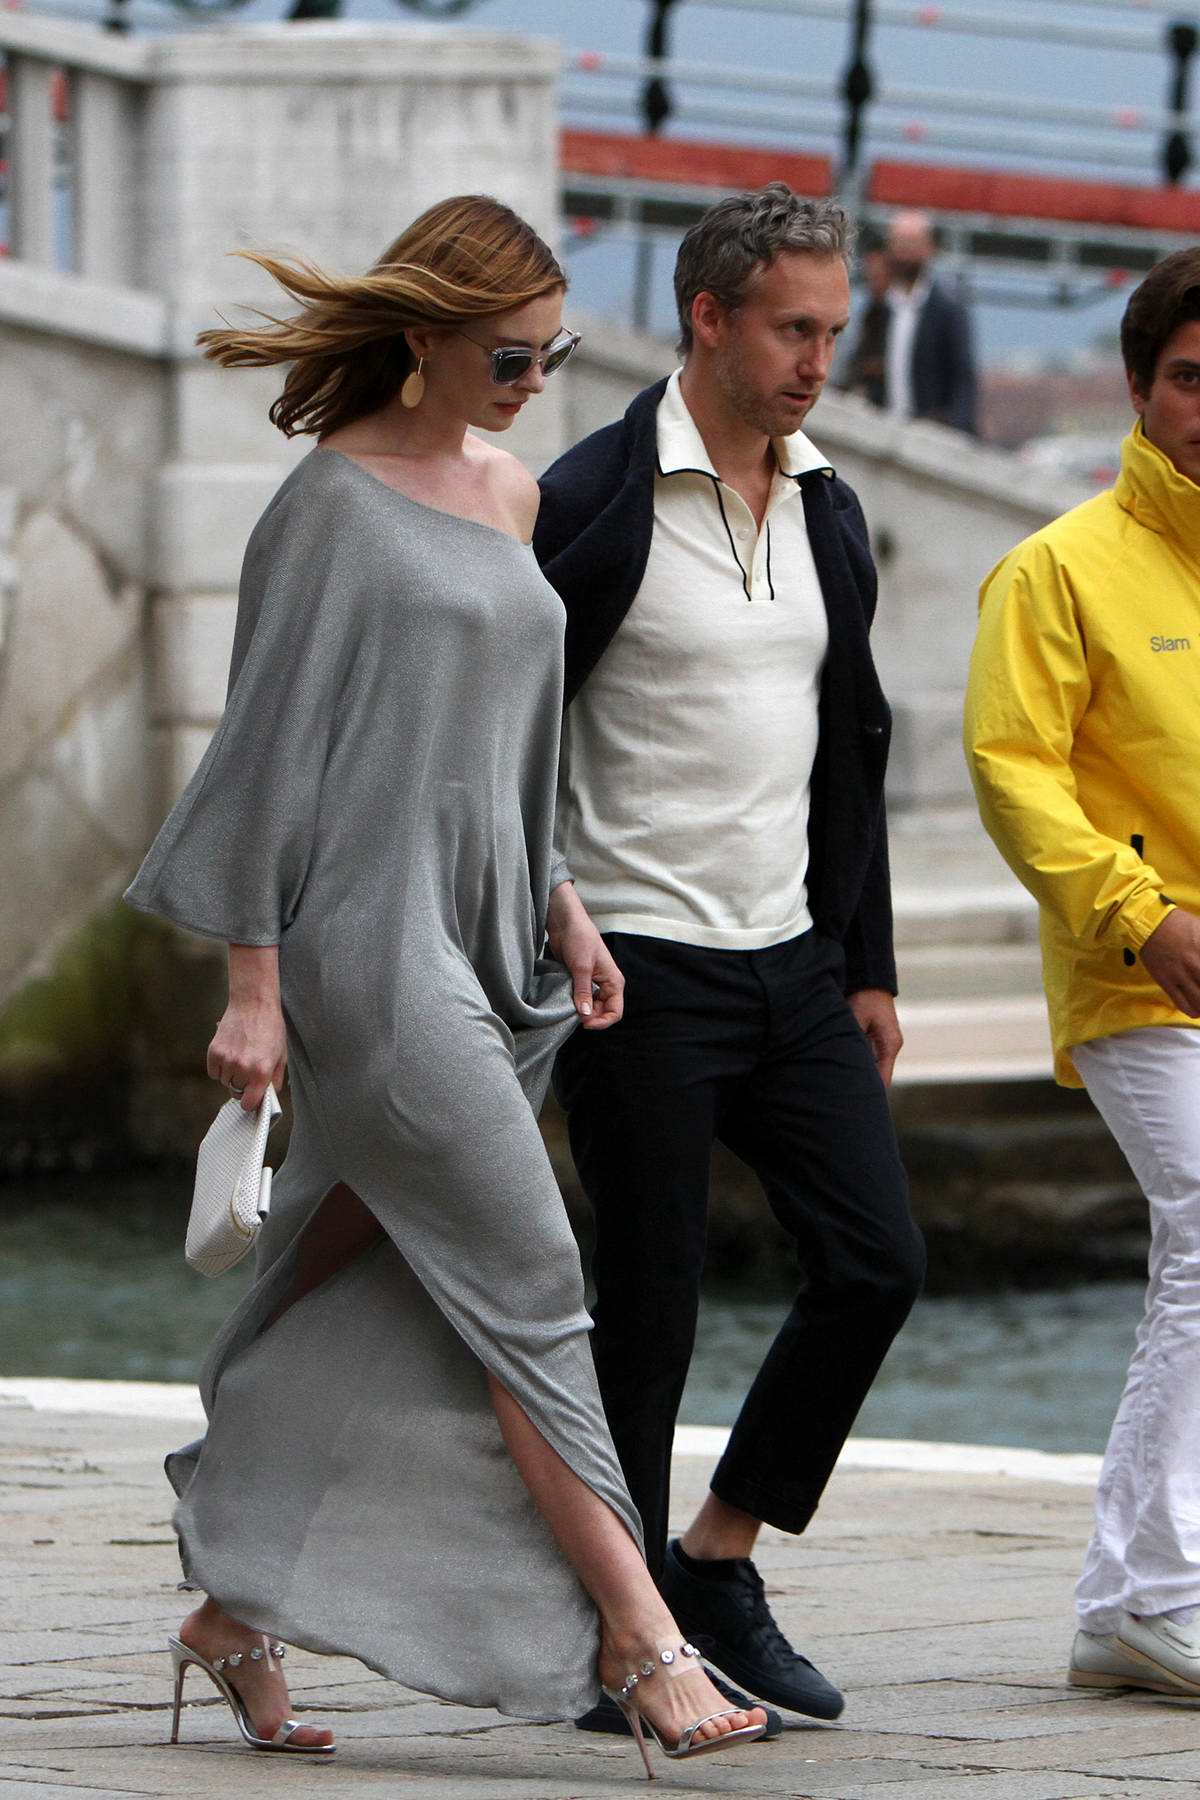 Anne Hathaway looks chic in a grey slit dress while out with husband Adam Shulman during 75th Venice Film Festival in Venice, Italy